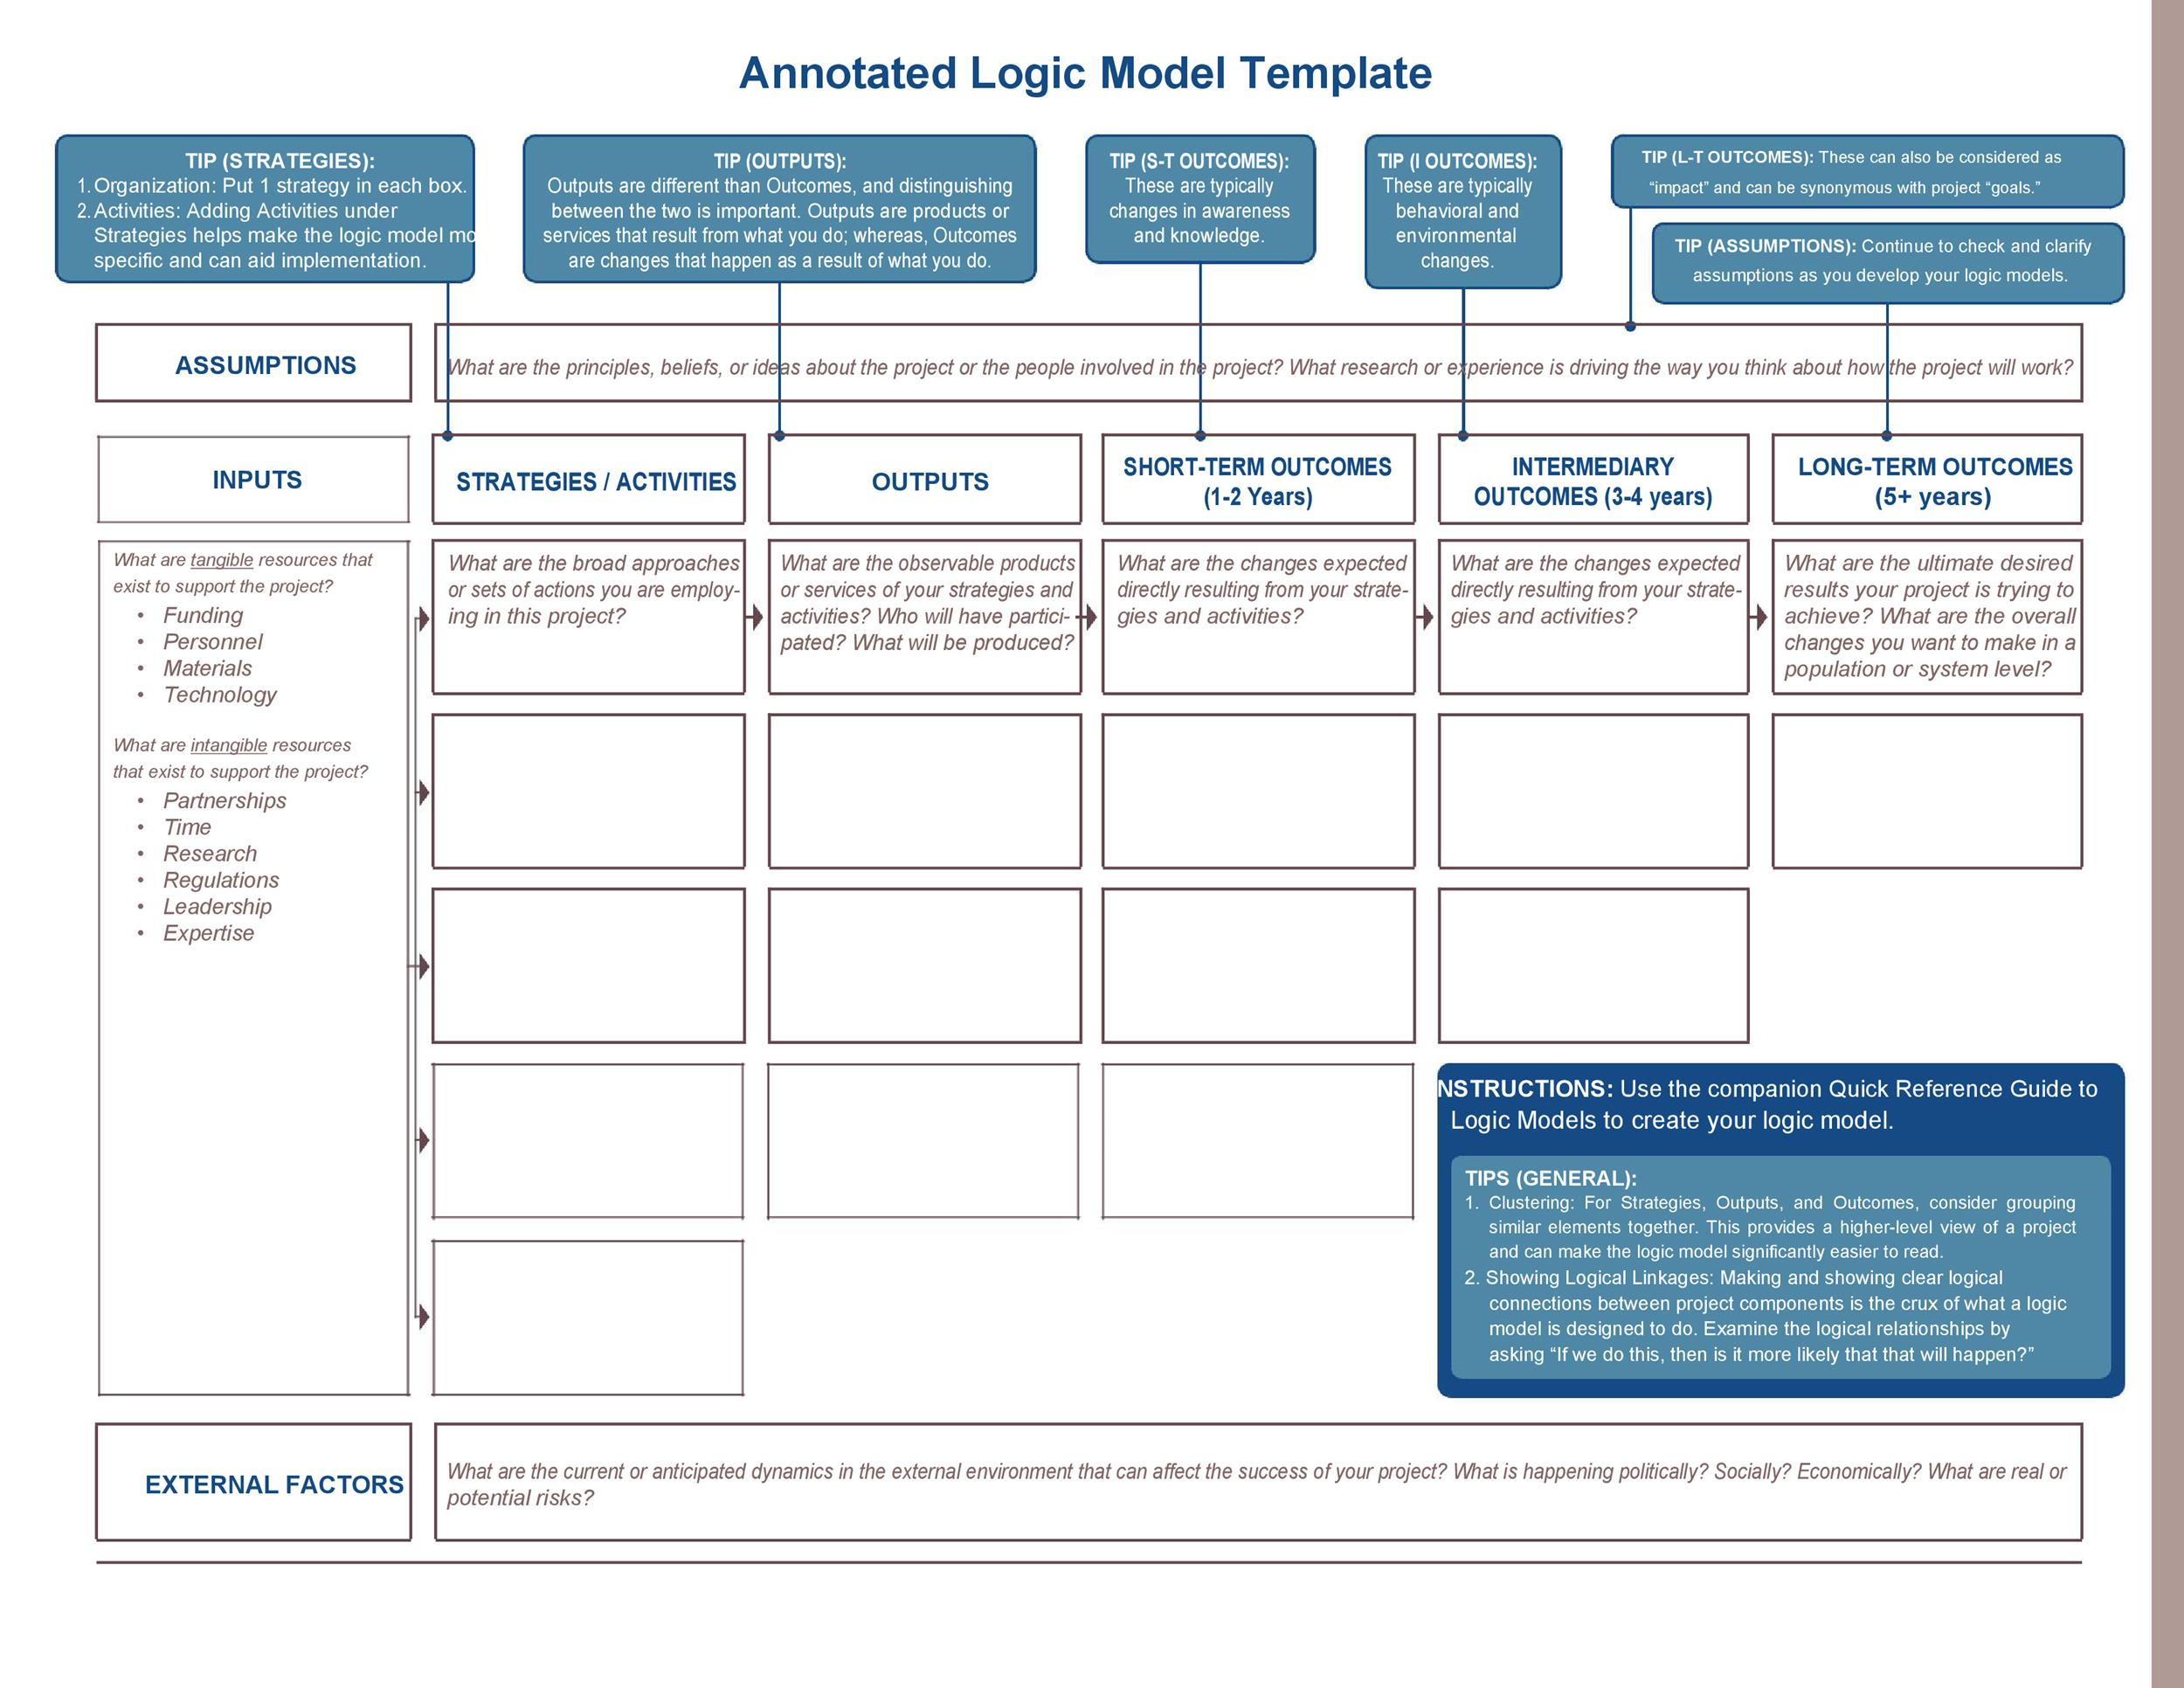 logic model template microsoft word - 11 logic model templates word excel pdf templates